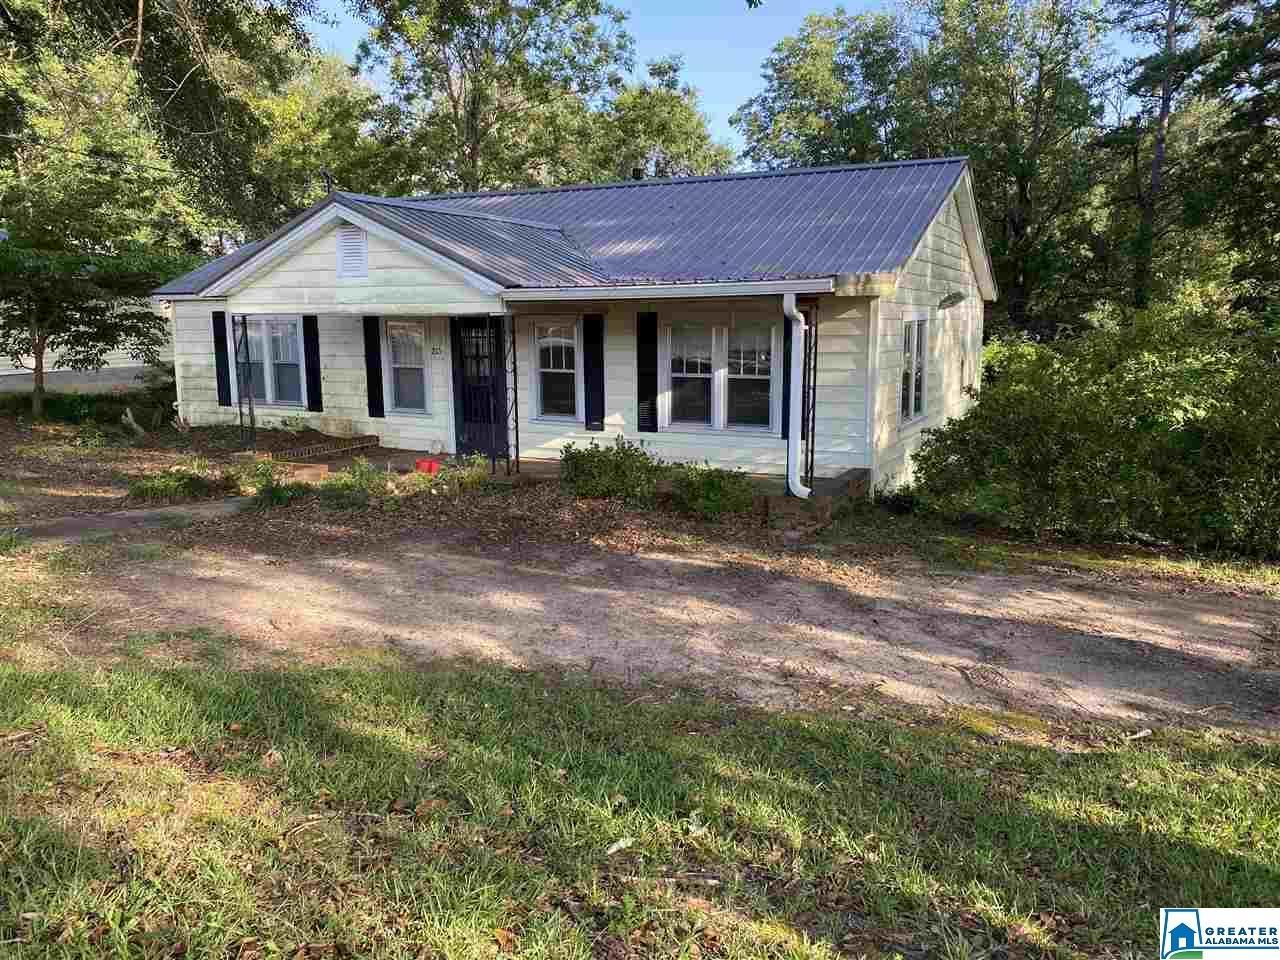 215 PEACHTREE ST, Roanoke, AL 36274 - MLS#: 888970